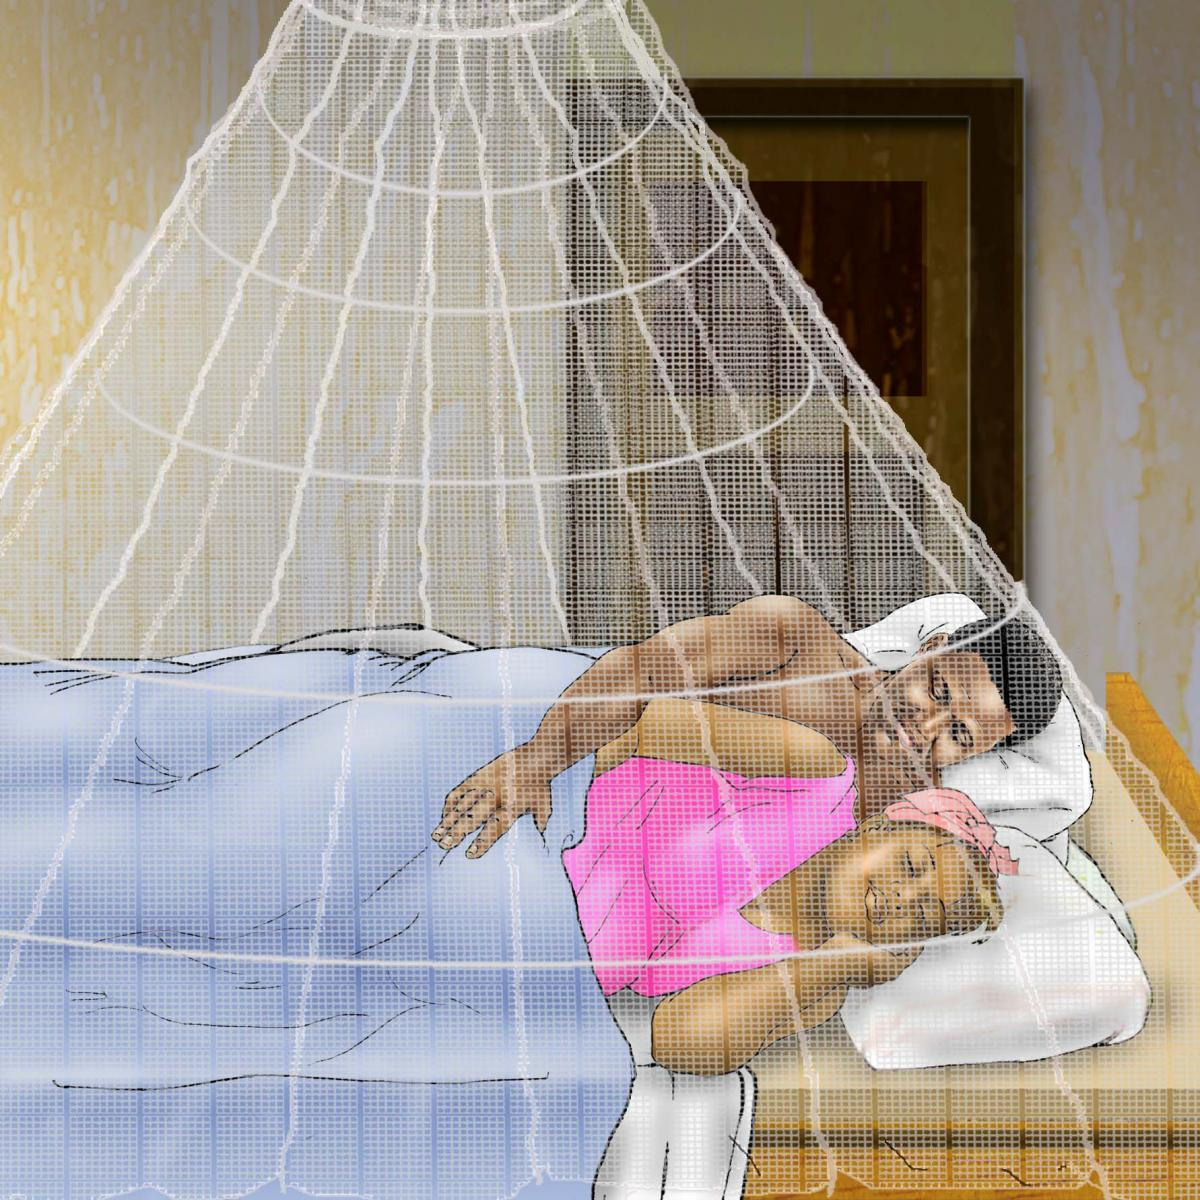 Malaria - Couple sleeping under mosquito net - 06 - Non-country specific